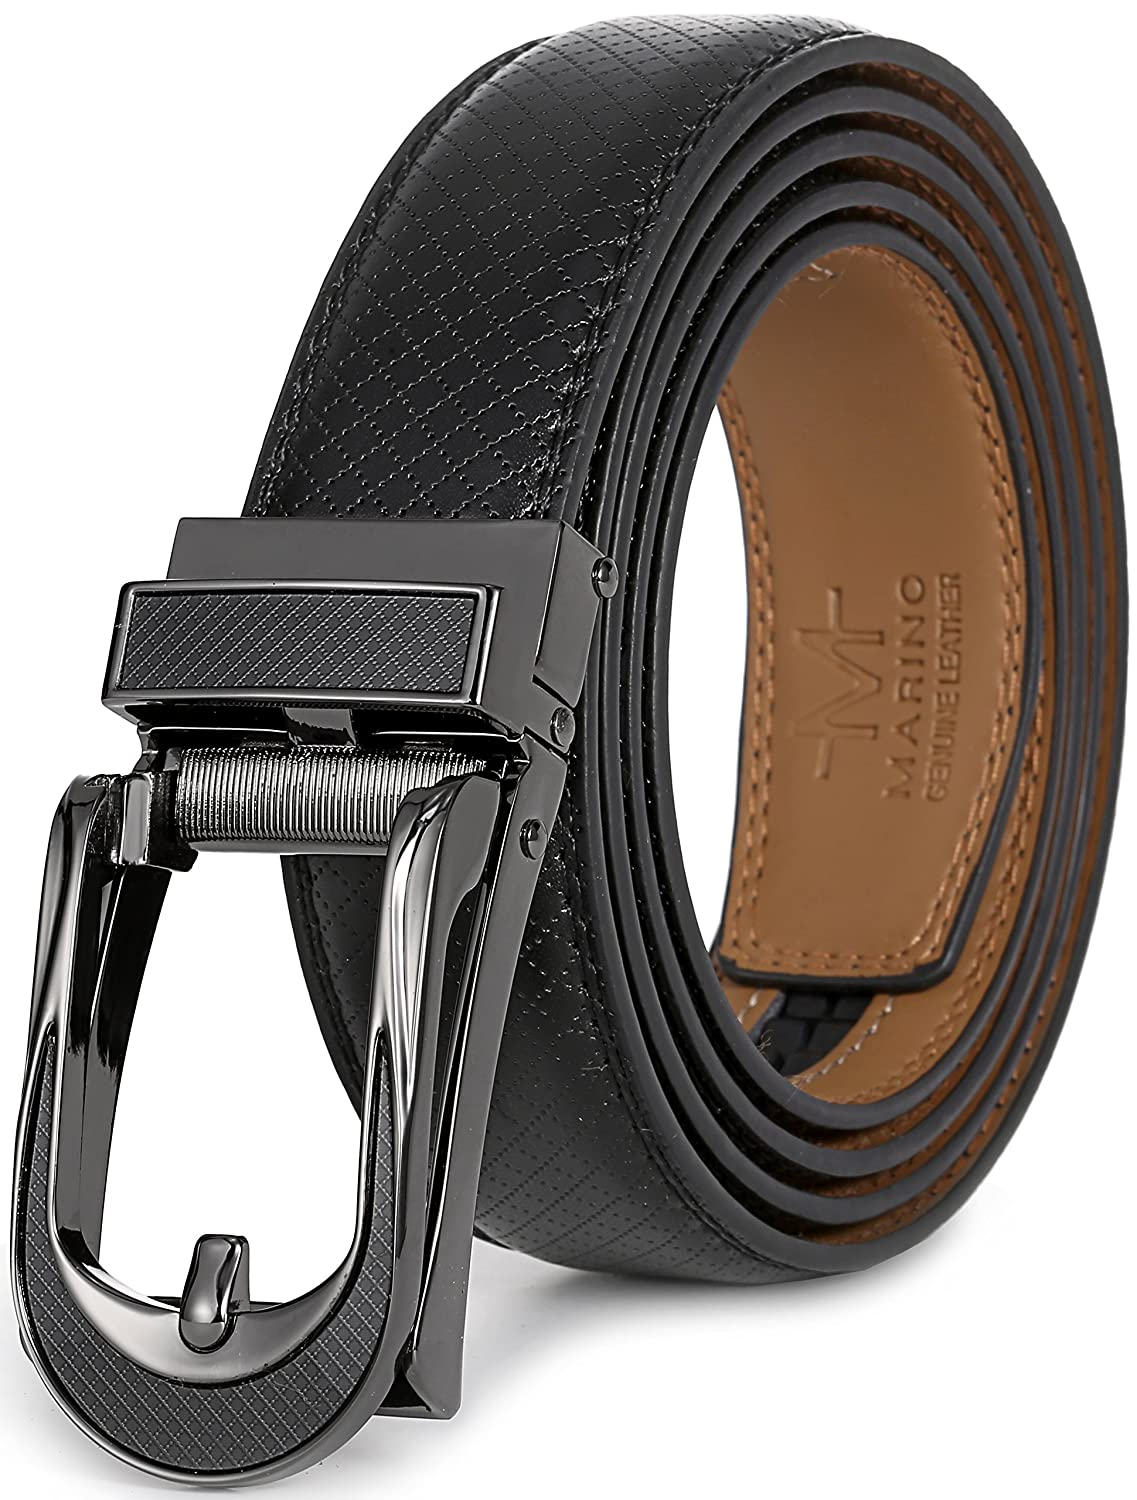 Marino Avenue Mens Genuine Leather Ratchet Dress Belt with Open Linxx Leather Buckle, Enclosed in an Elegant Gift Box Enclosed in an Elegant Gift Box - Black - Style 138 - Custom Up to 44 Waist OLB009-138-BKM